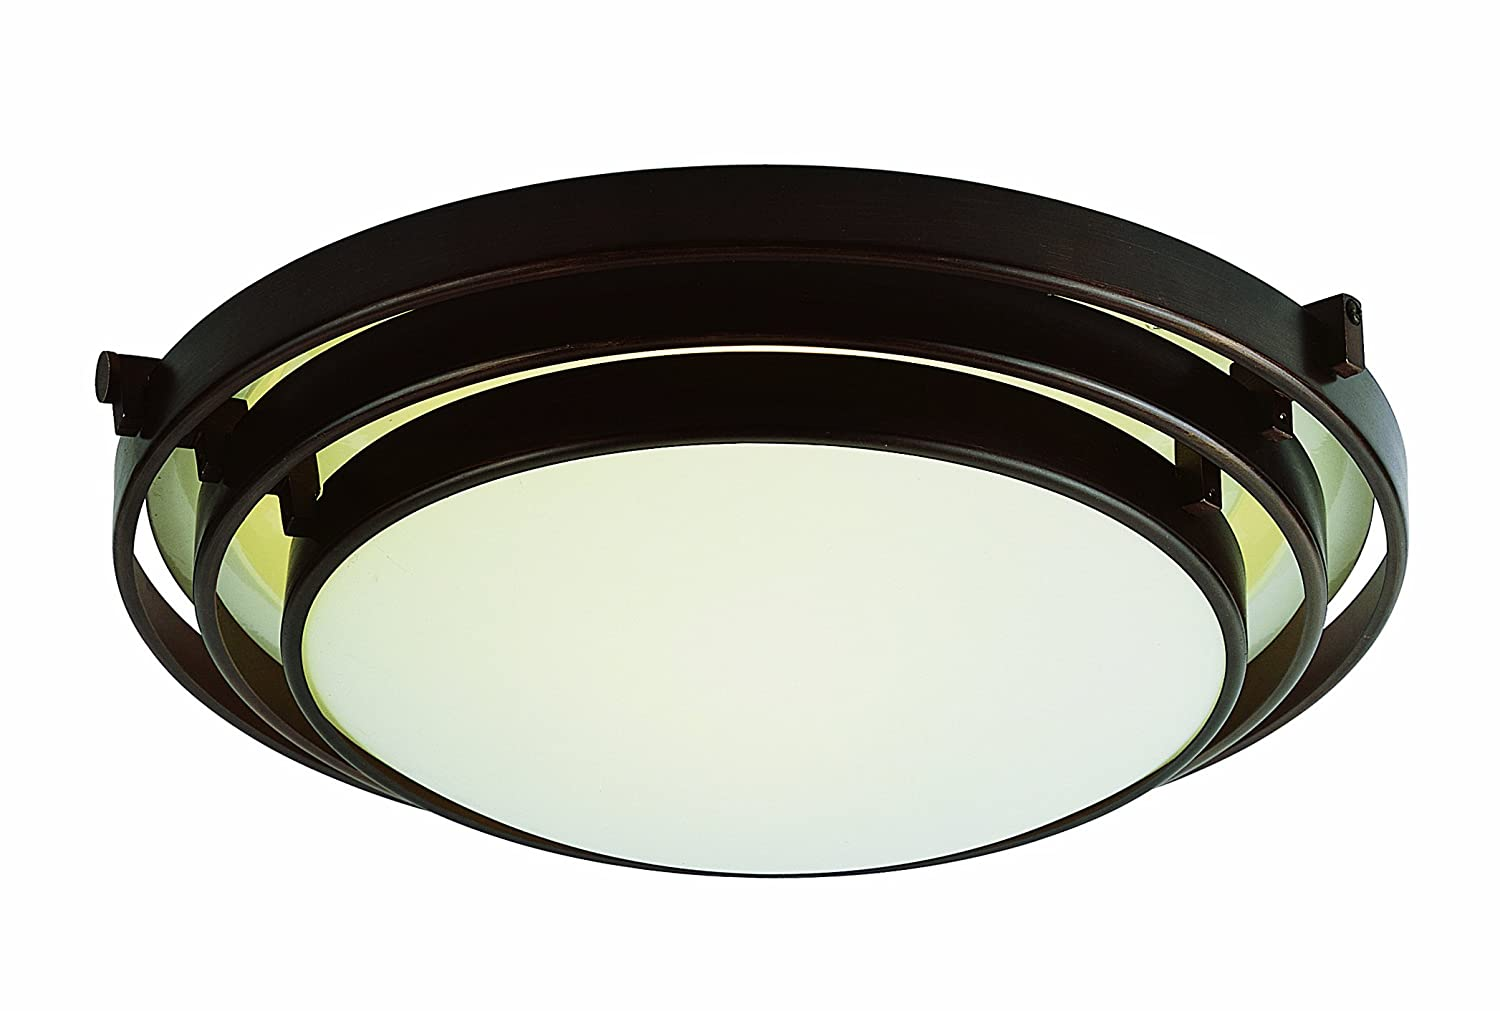 Camino Solare Velux Trans Globe Lighting Pl 2482 Rob 1 Light Flush Mount Rubbed Oil